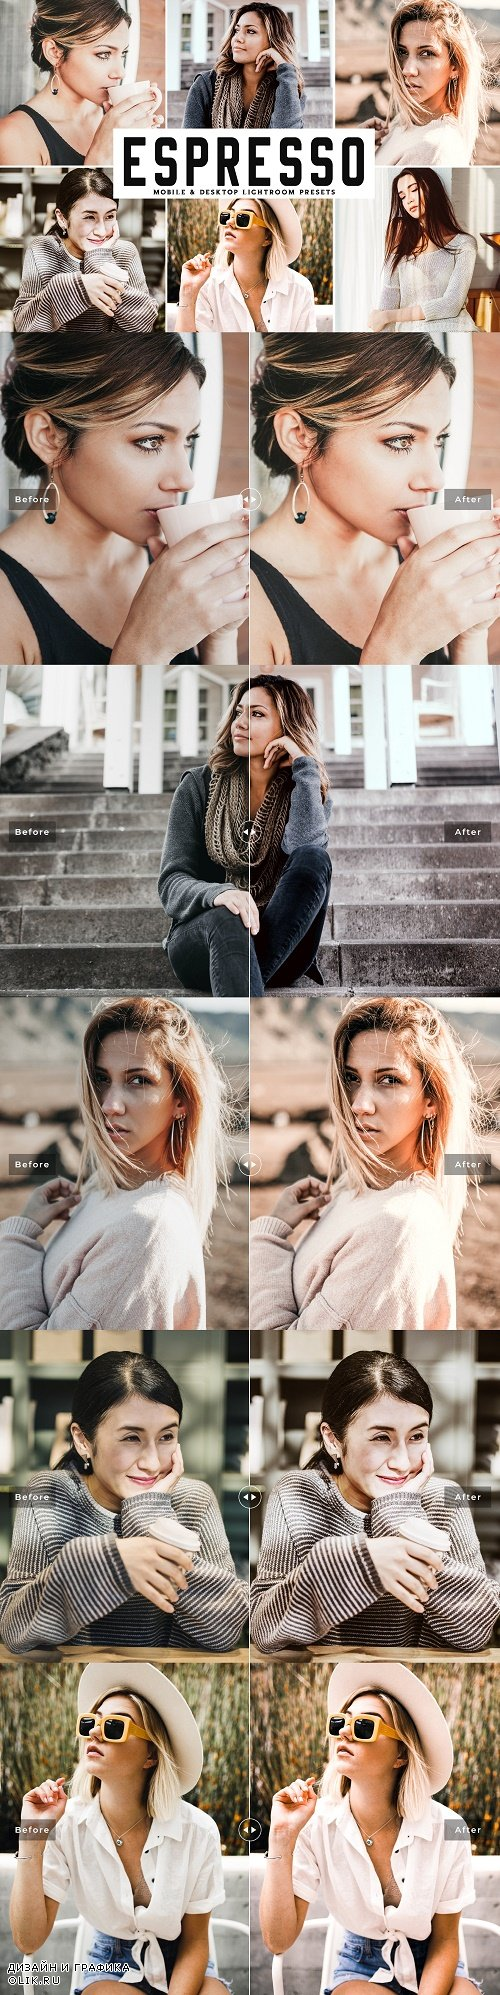 Espresso Lightroom Presets Pack  - 4040642